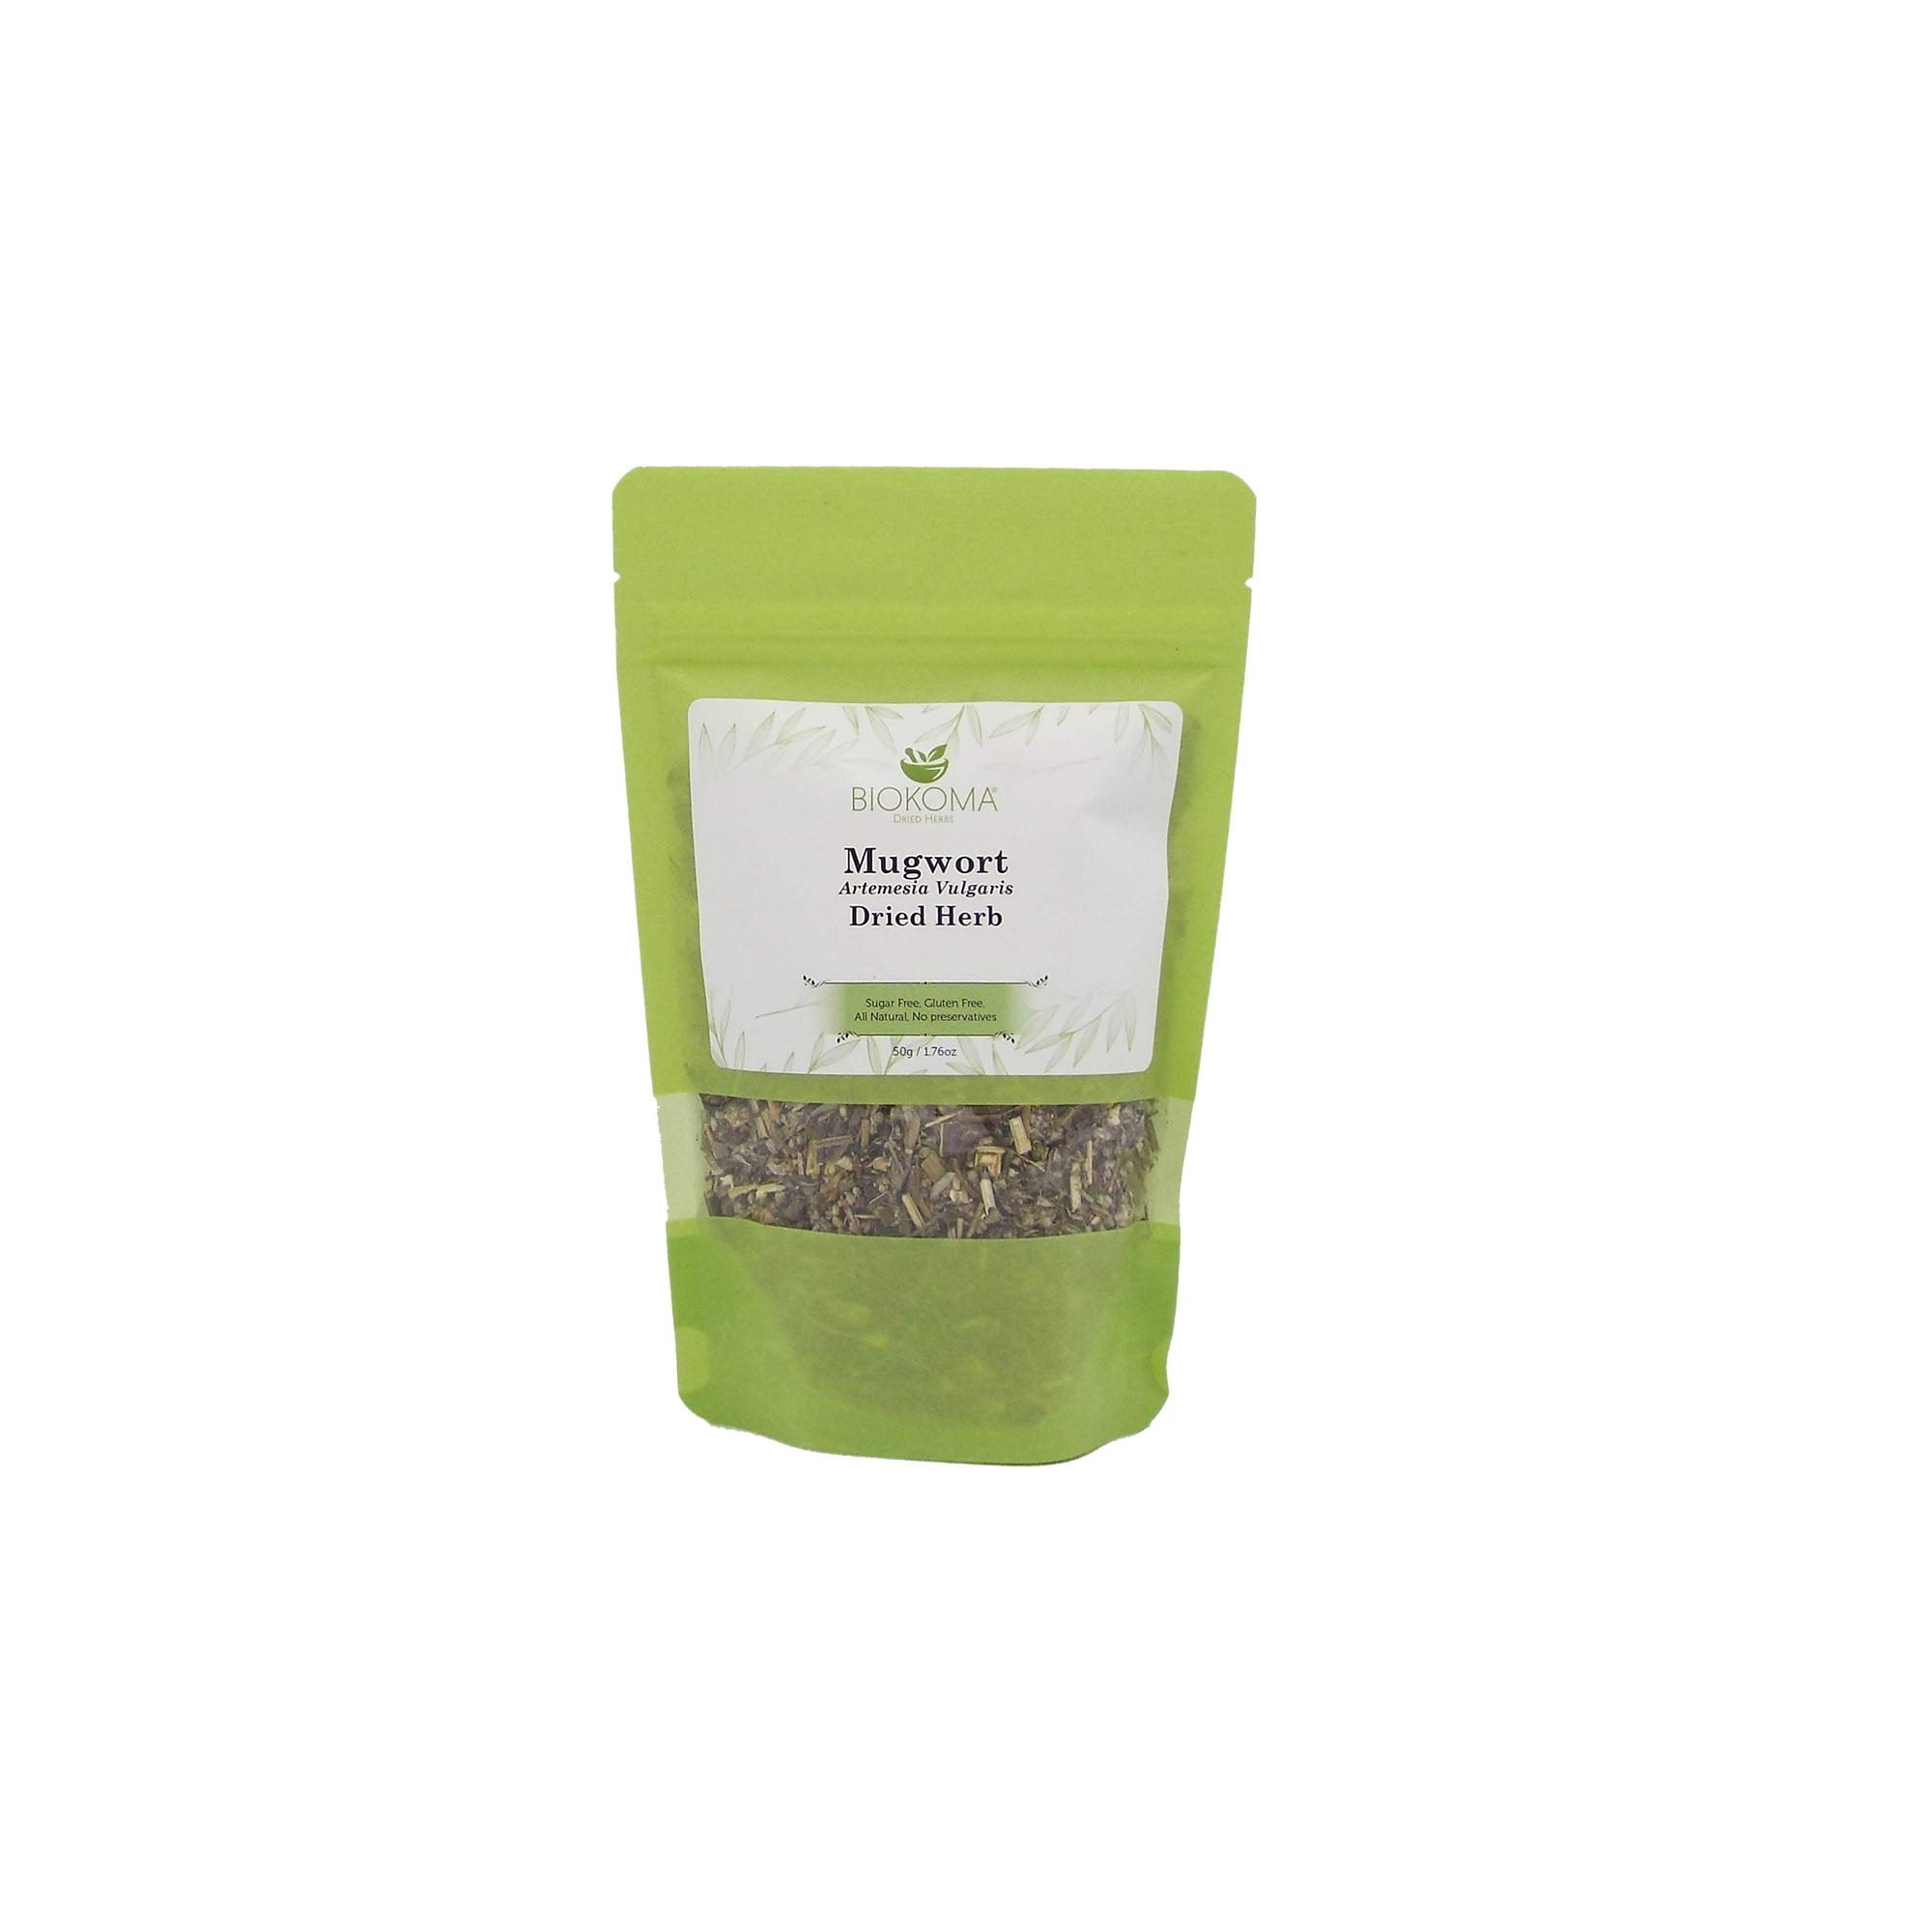 100% Pure and Organic Biokoma Mugwort Dried Herb - Natural Herbal Tea in Resealable Pack Moisture Proof Pouch - 50g